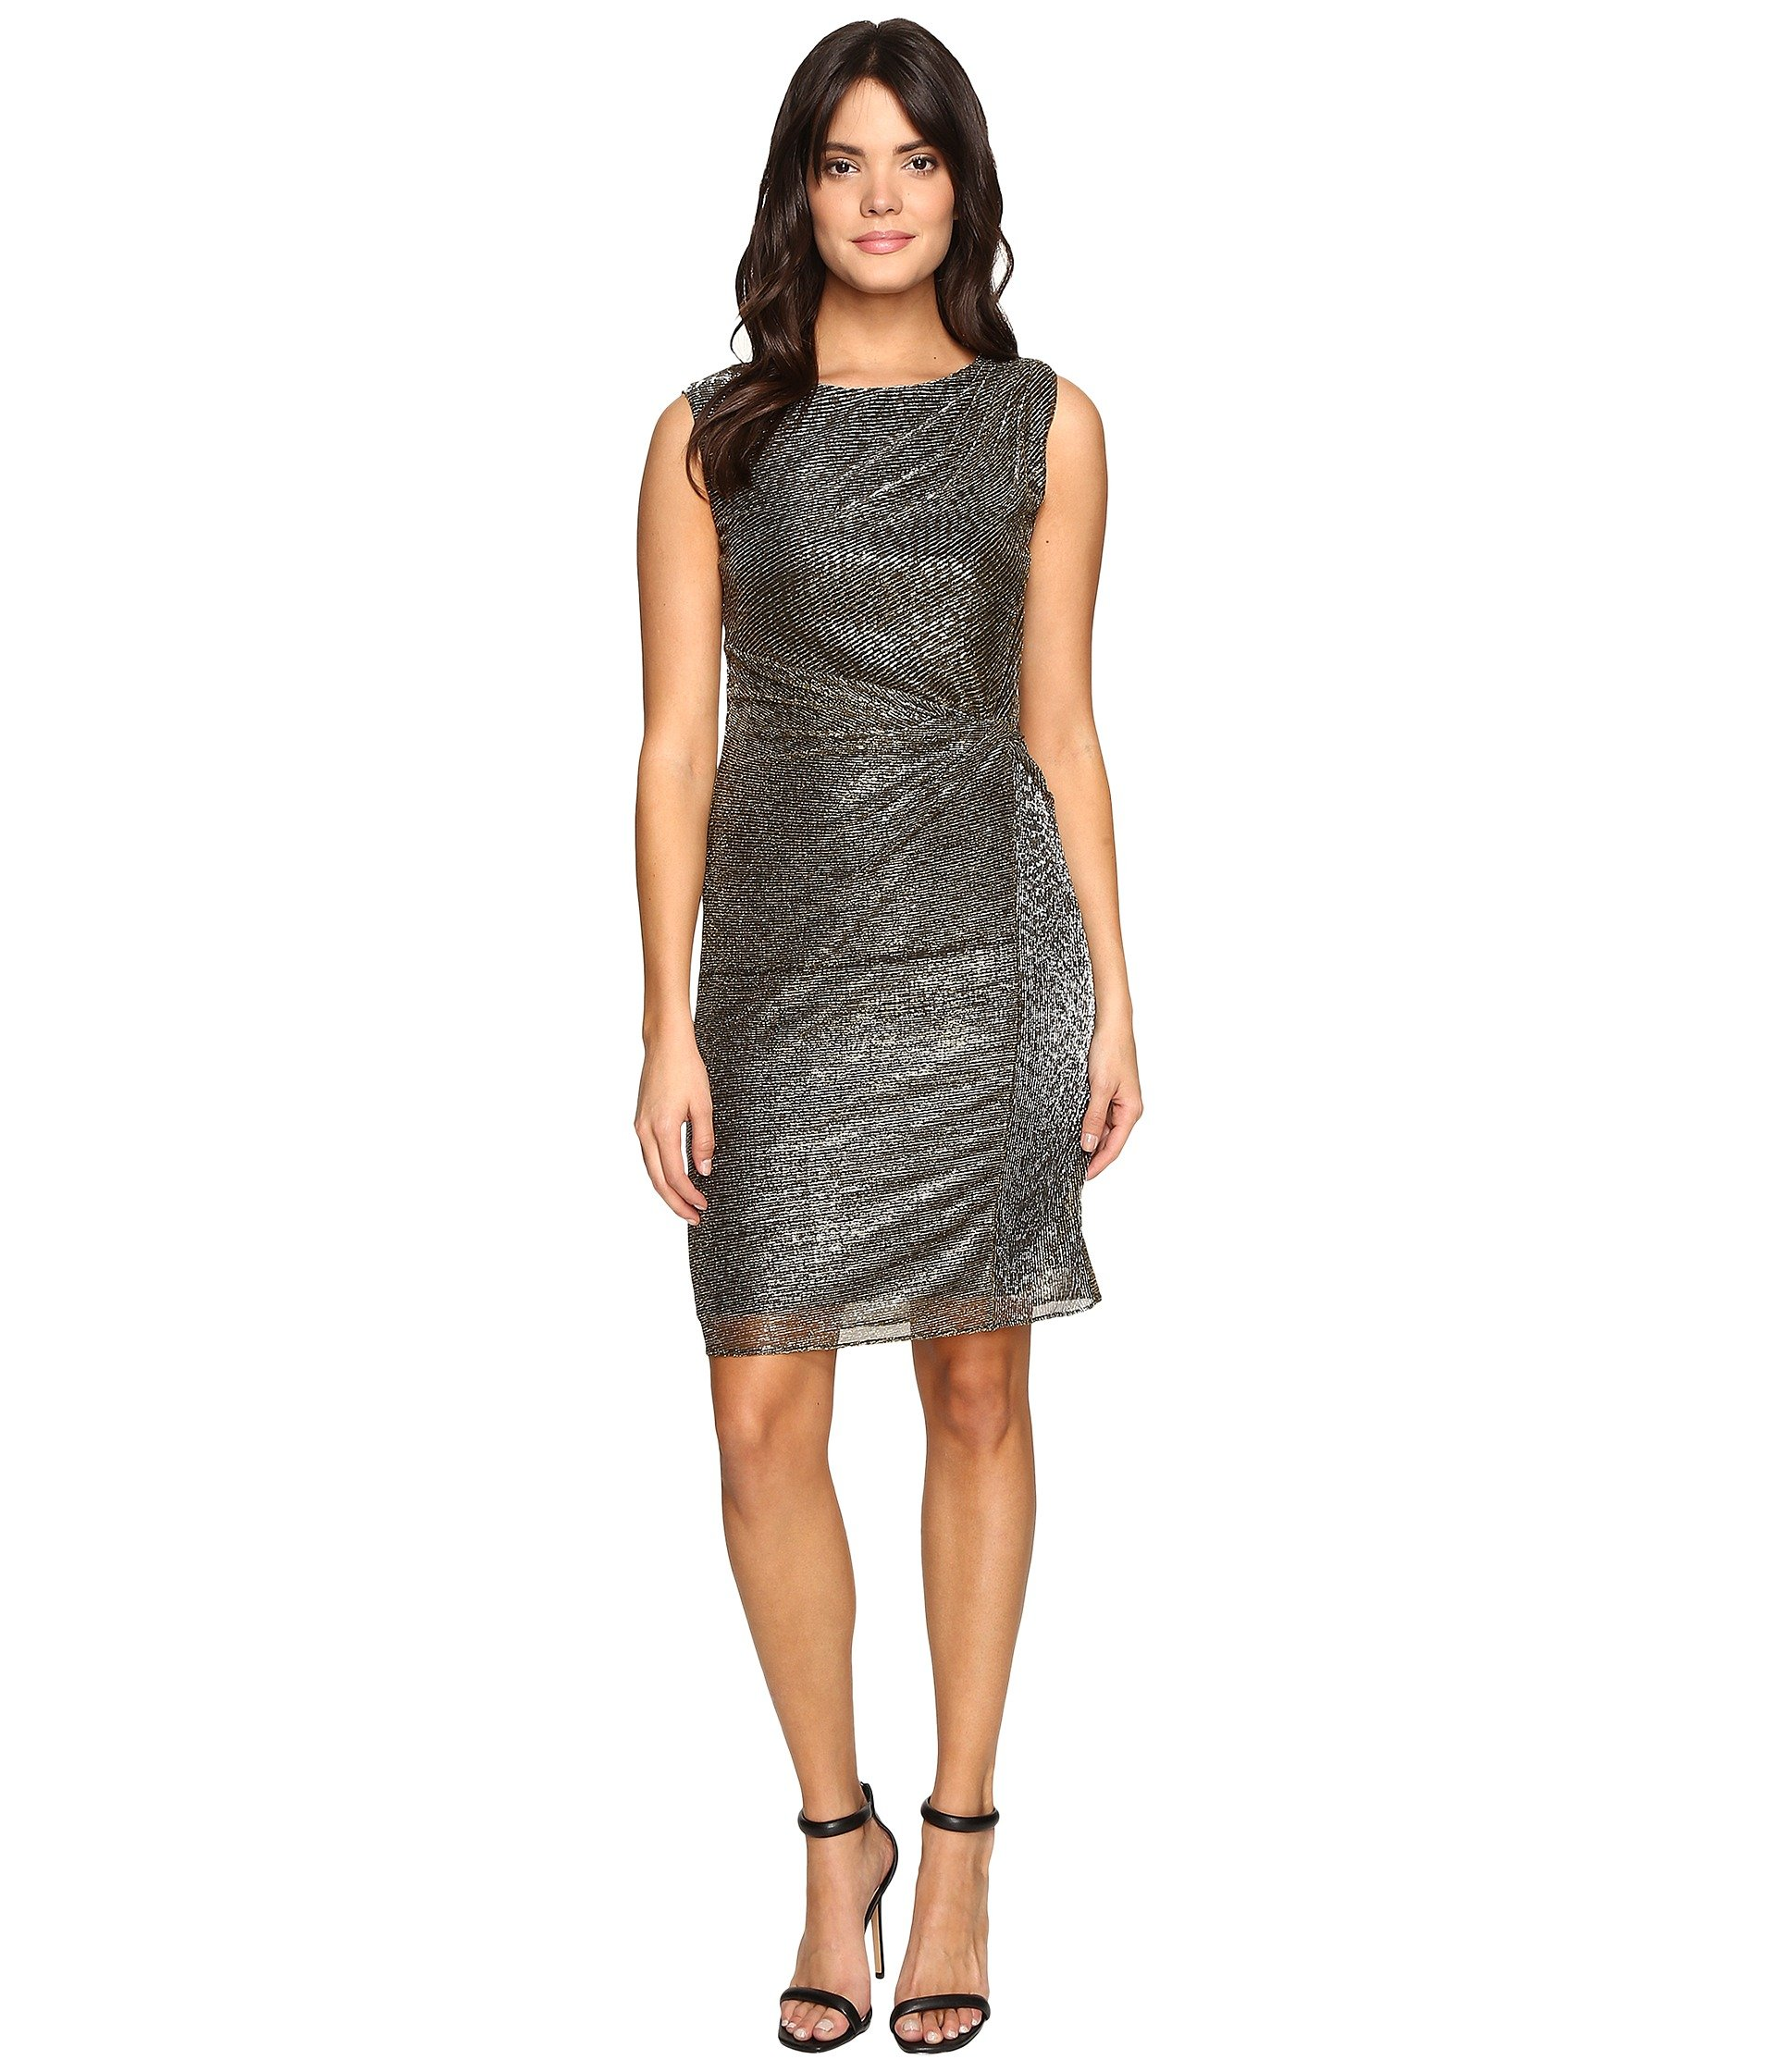 Galaxy Metallic Dress w/ Side Knot Detail